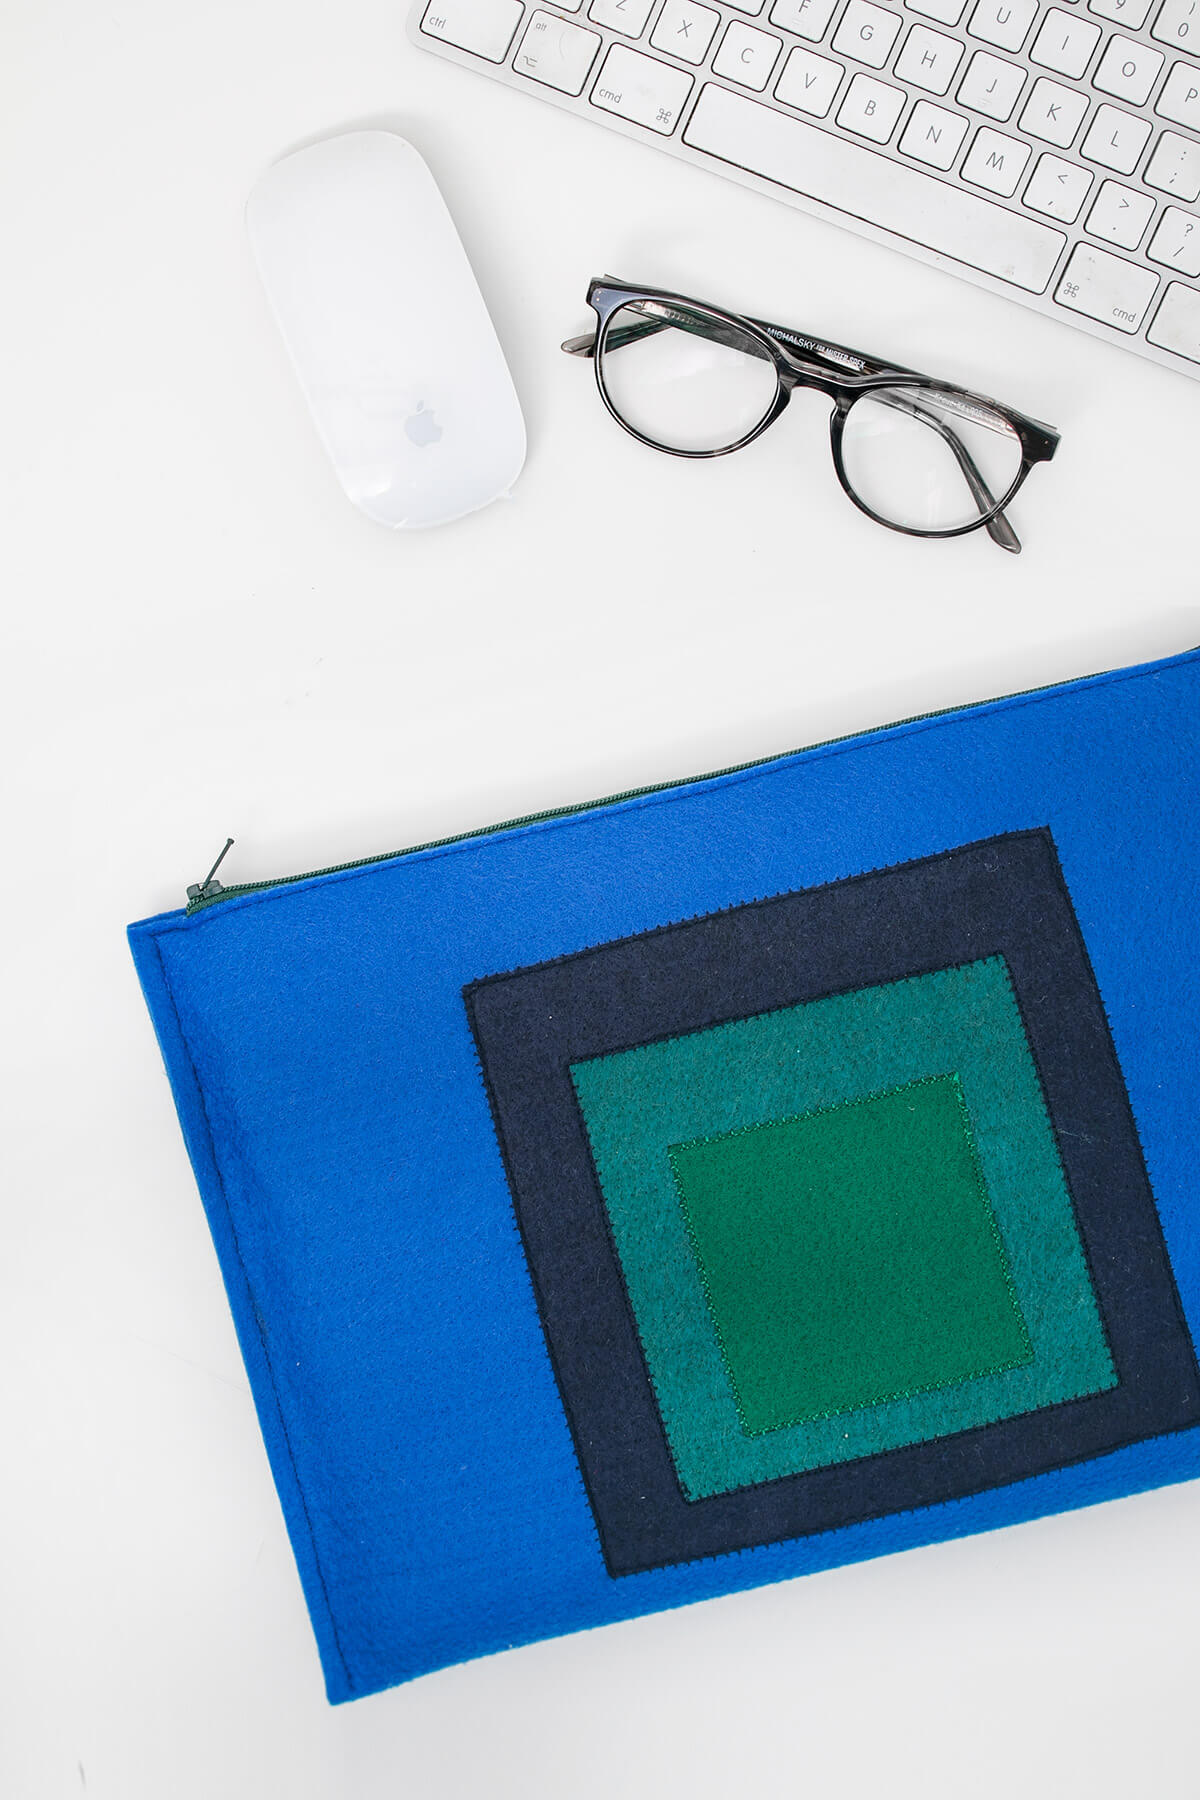 Abstract Color Block Felt Laptop Case - DIY Sewing Tutorial